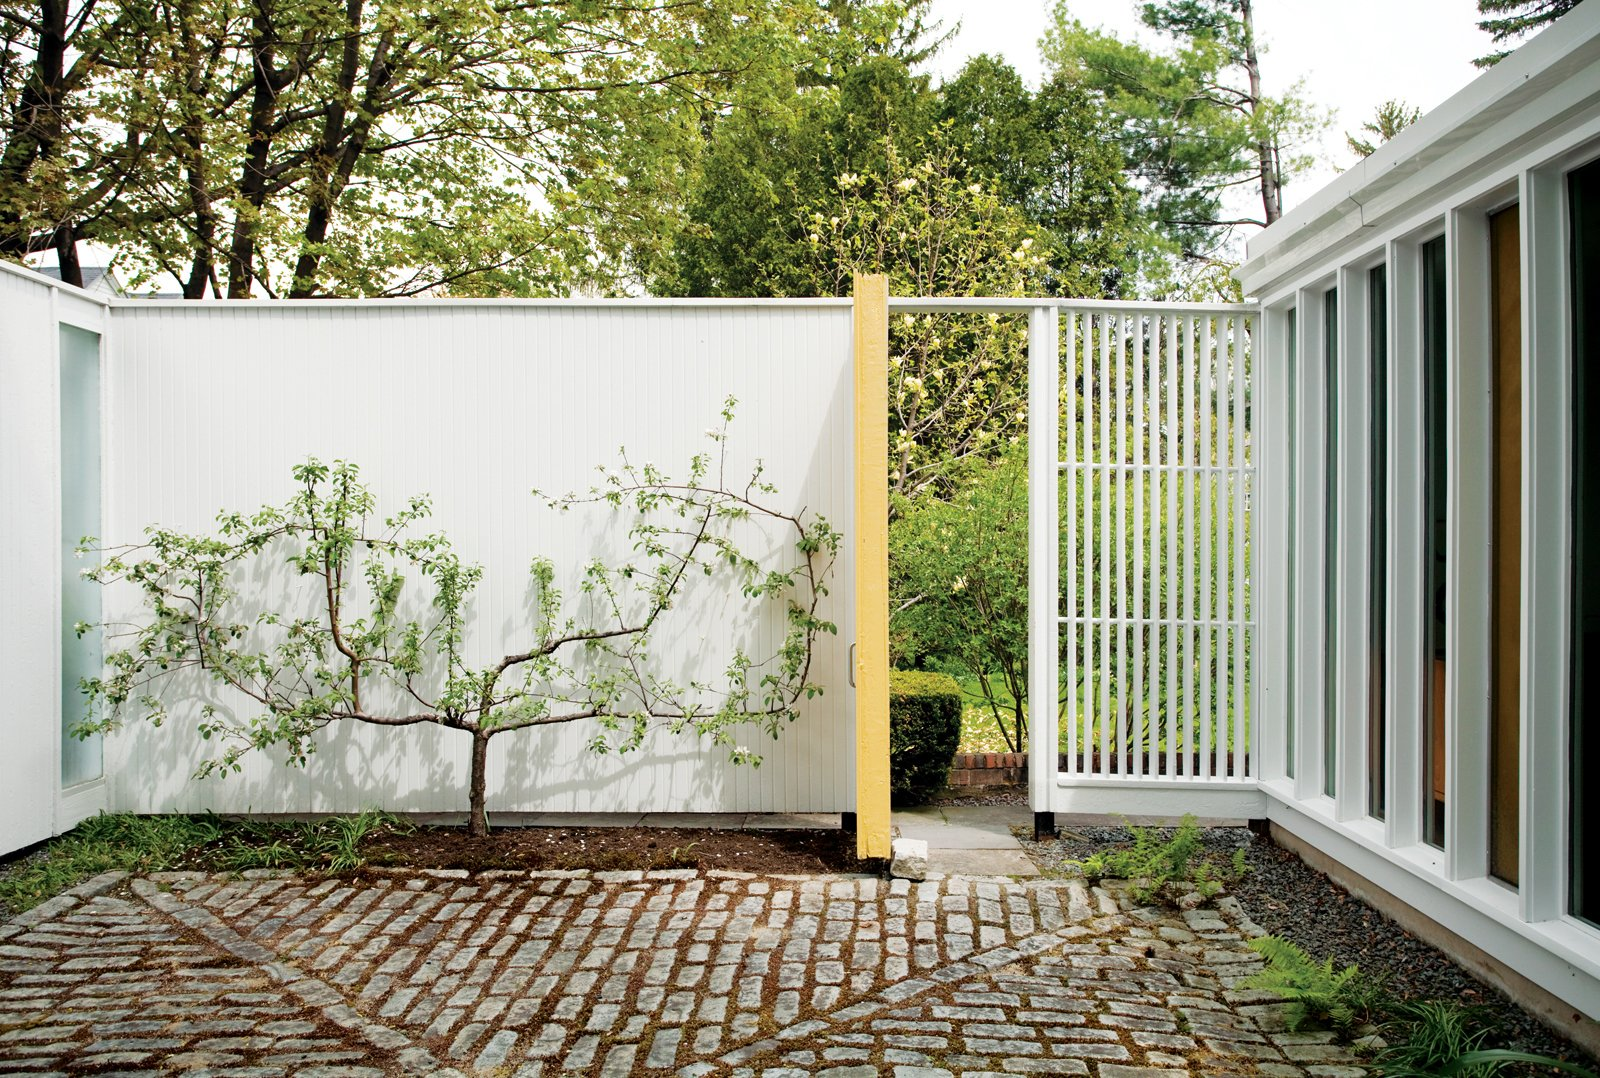 """Isaacson """"borrows the view"""" of a neighbor's magnolia on the adjacent property by propping open the side door. His own espaliered apple tree makes the most of limited space.  Photo 2 of 8 in The House of a Lifetime"""